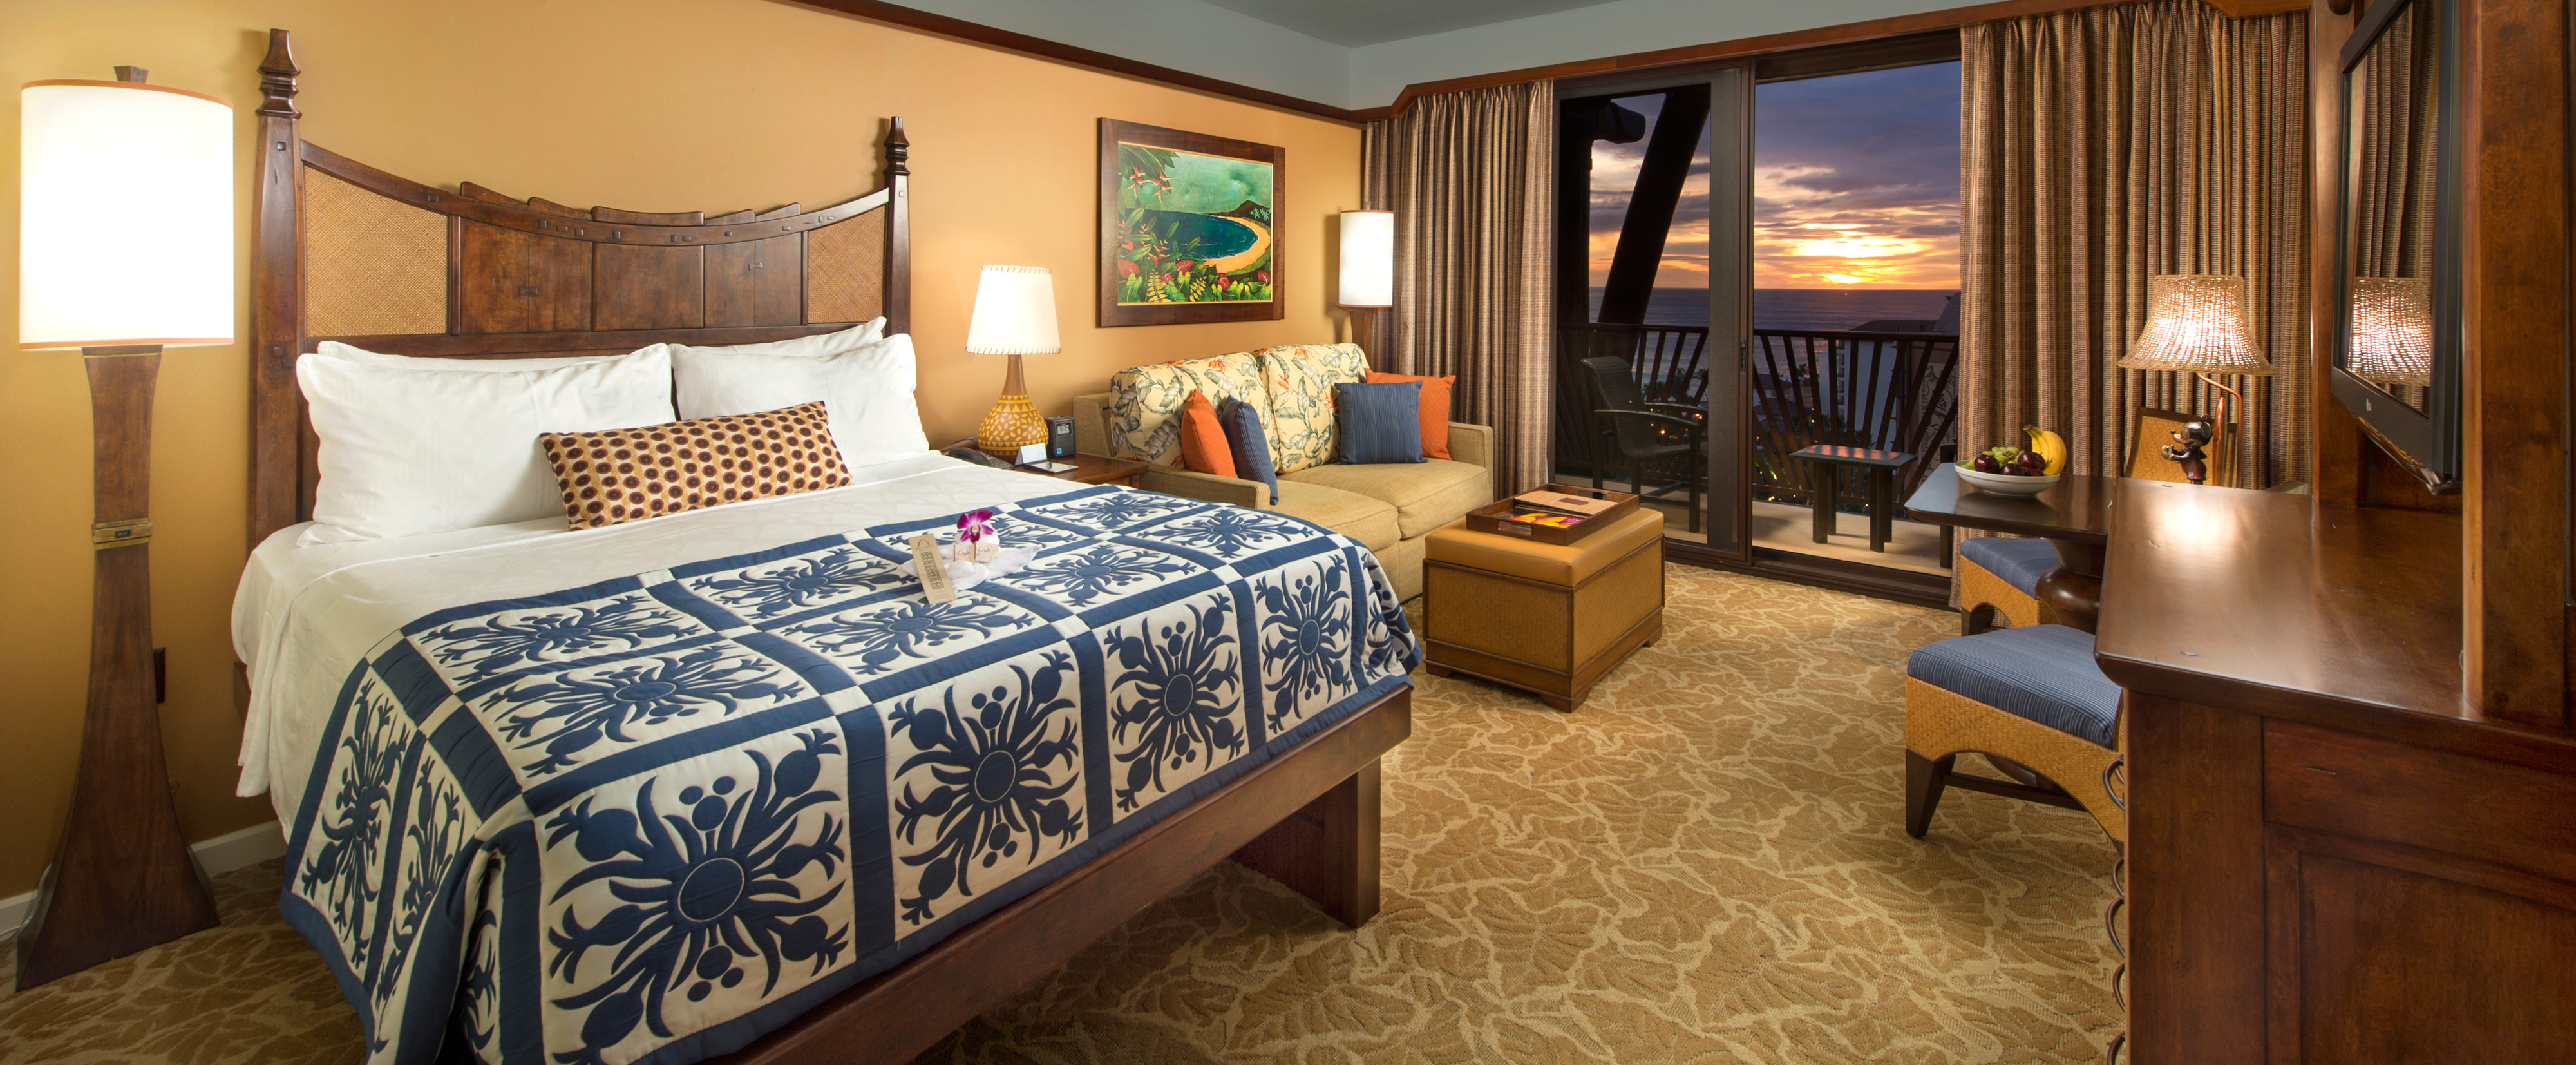 Standard hotel rooms aulani hawaii resort spa 4 beds in one room